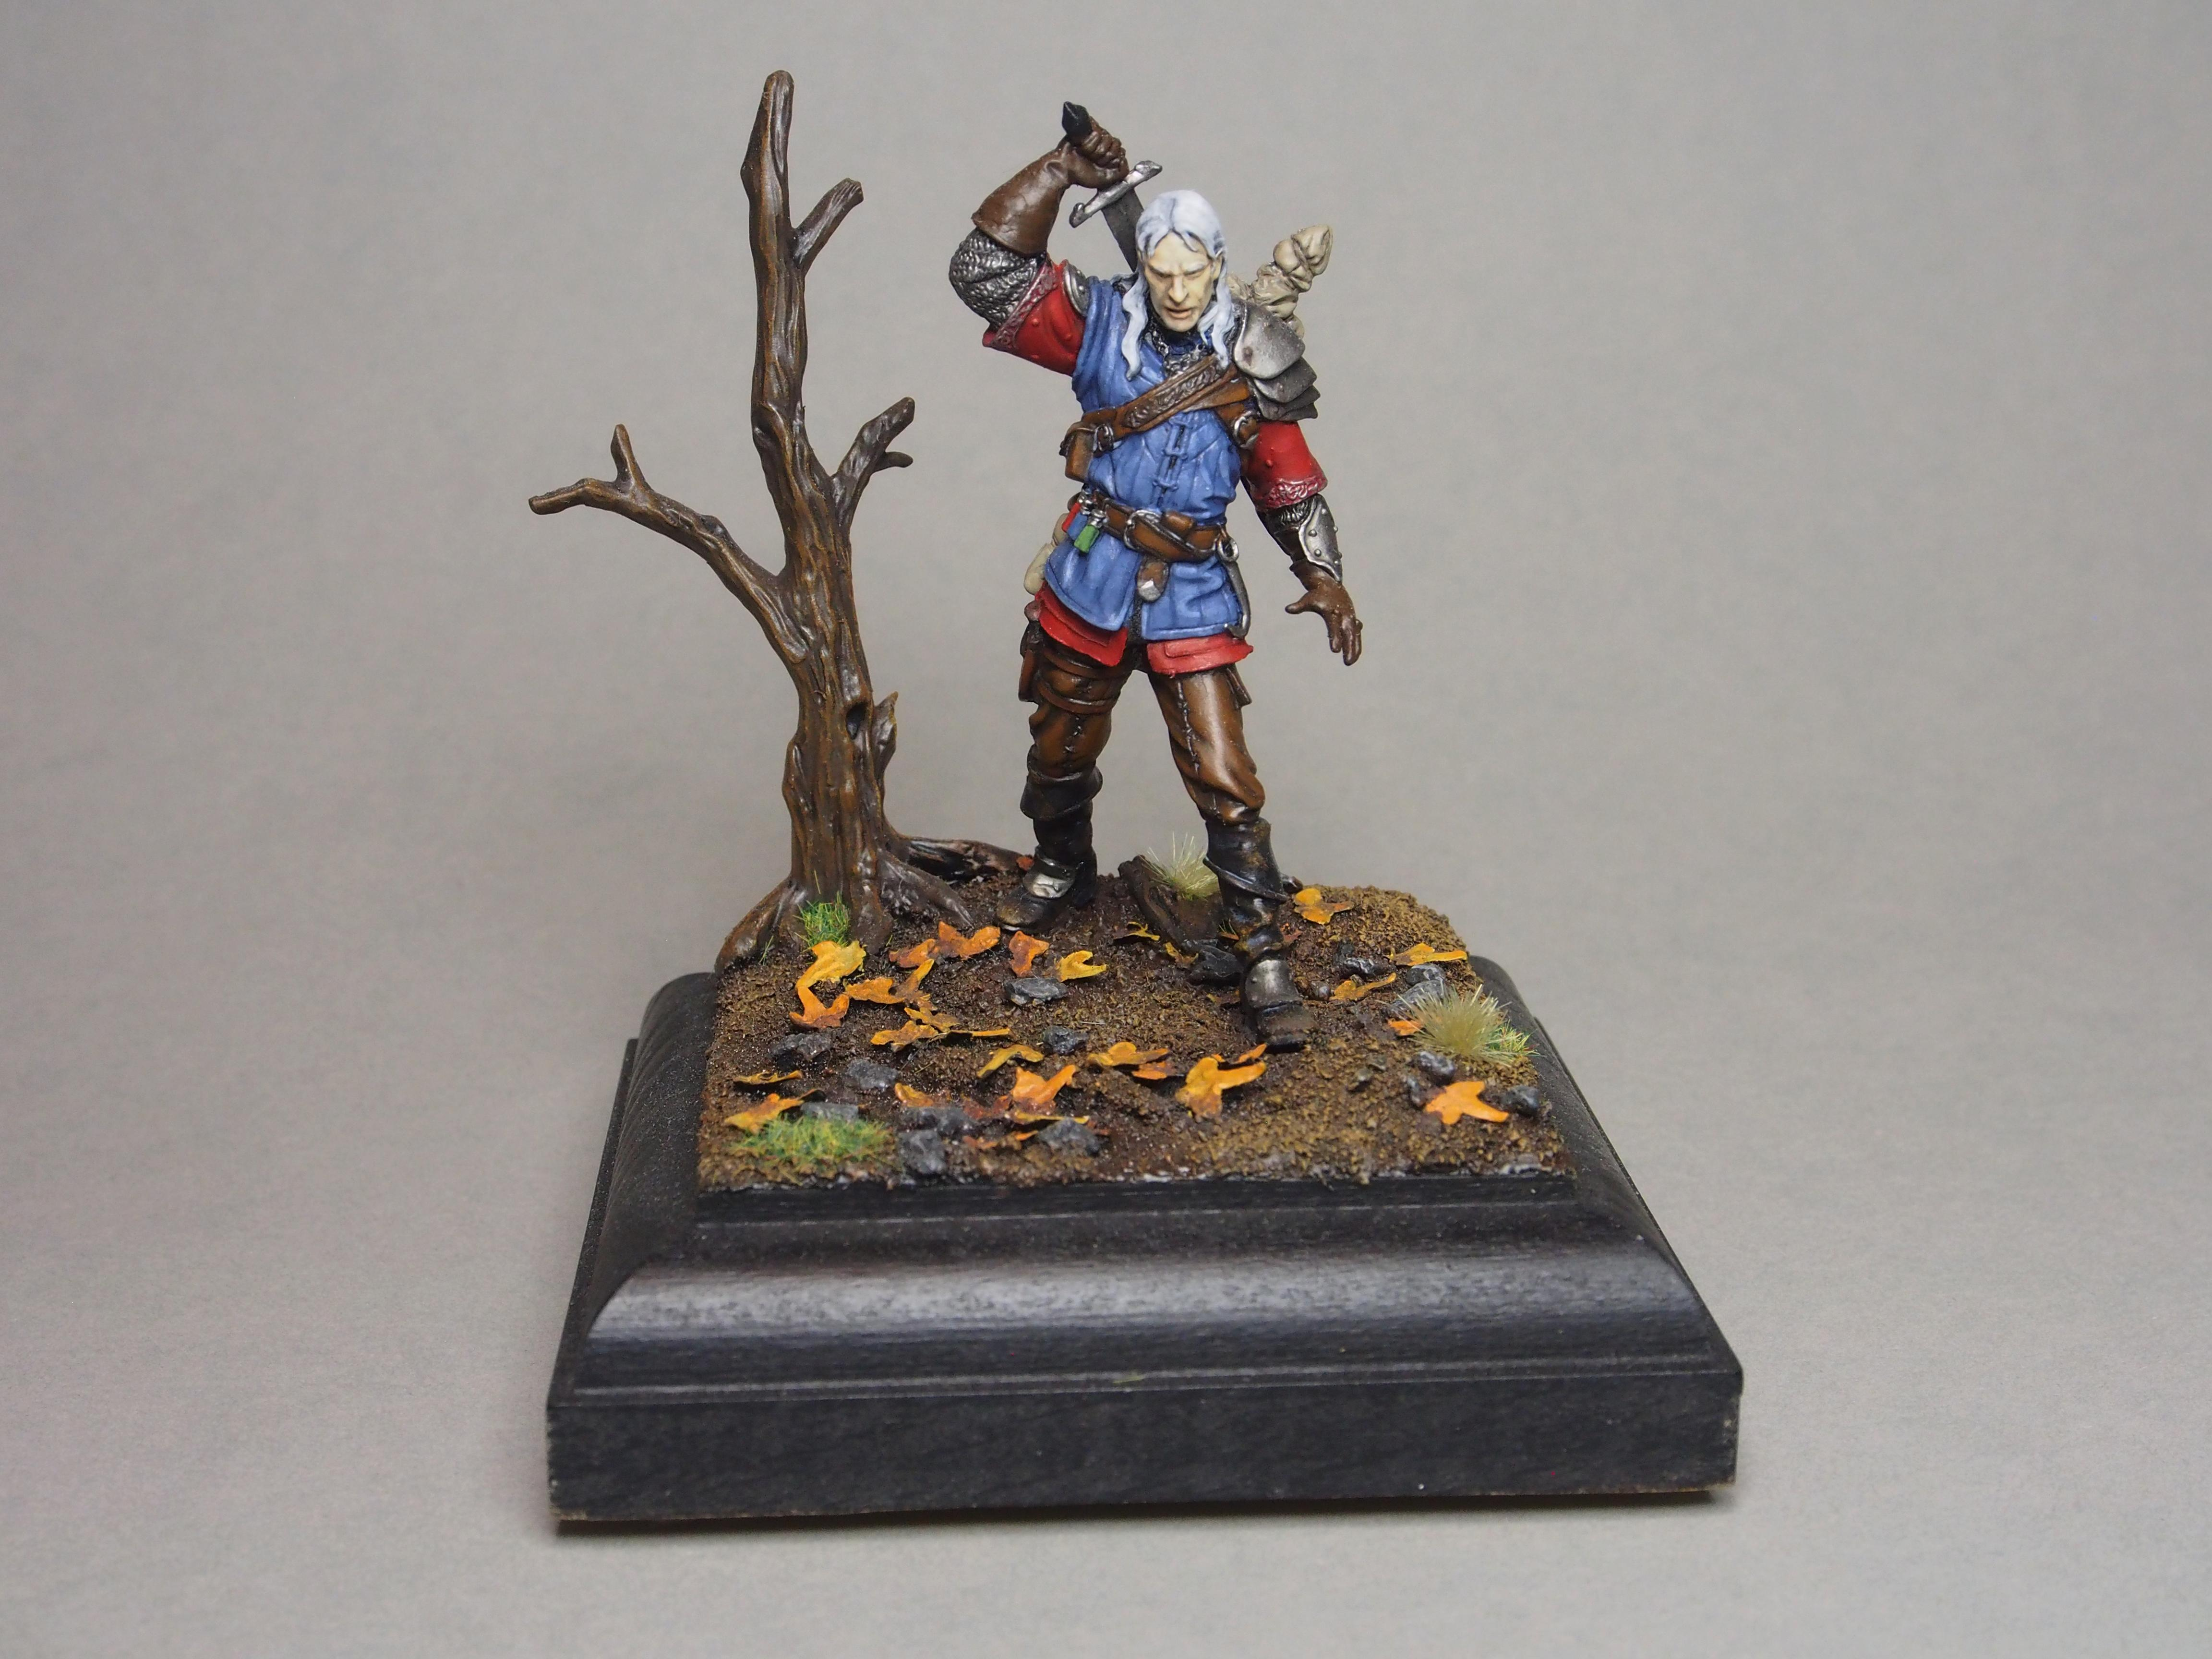 54mm, Andrea, Witcher